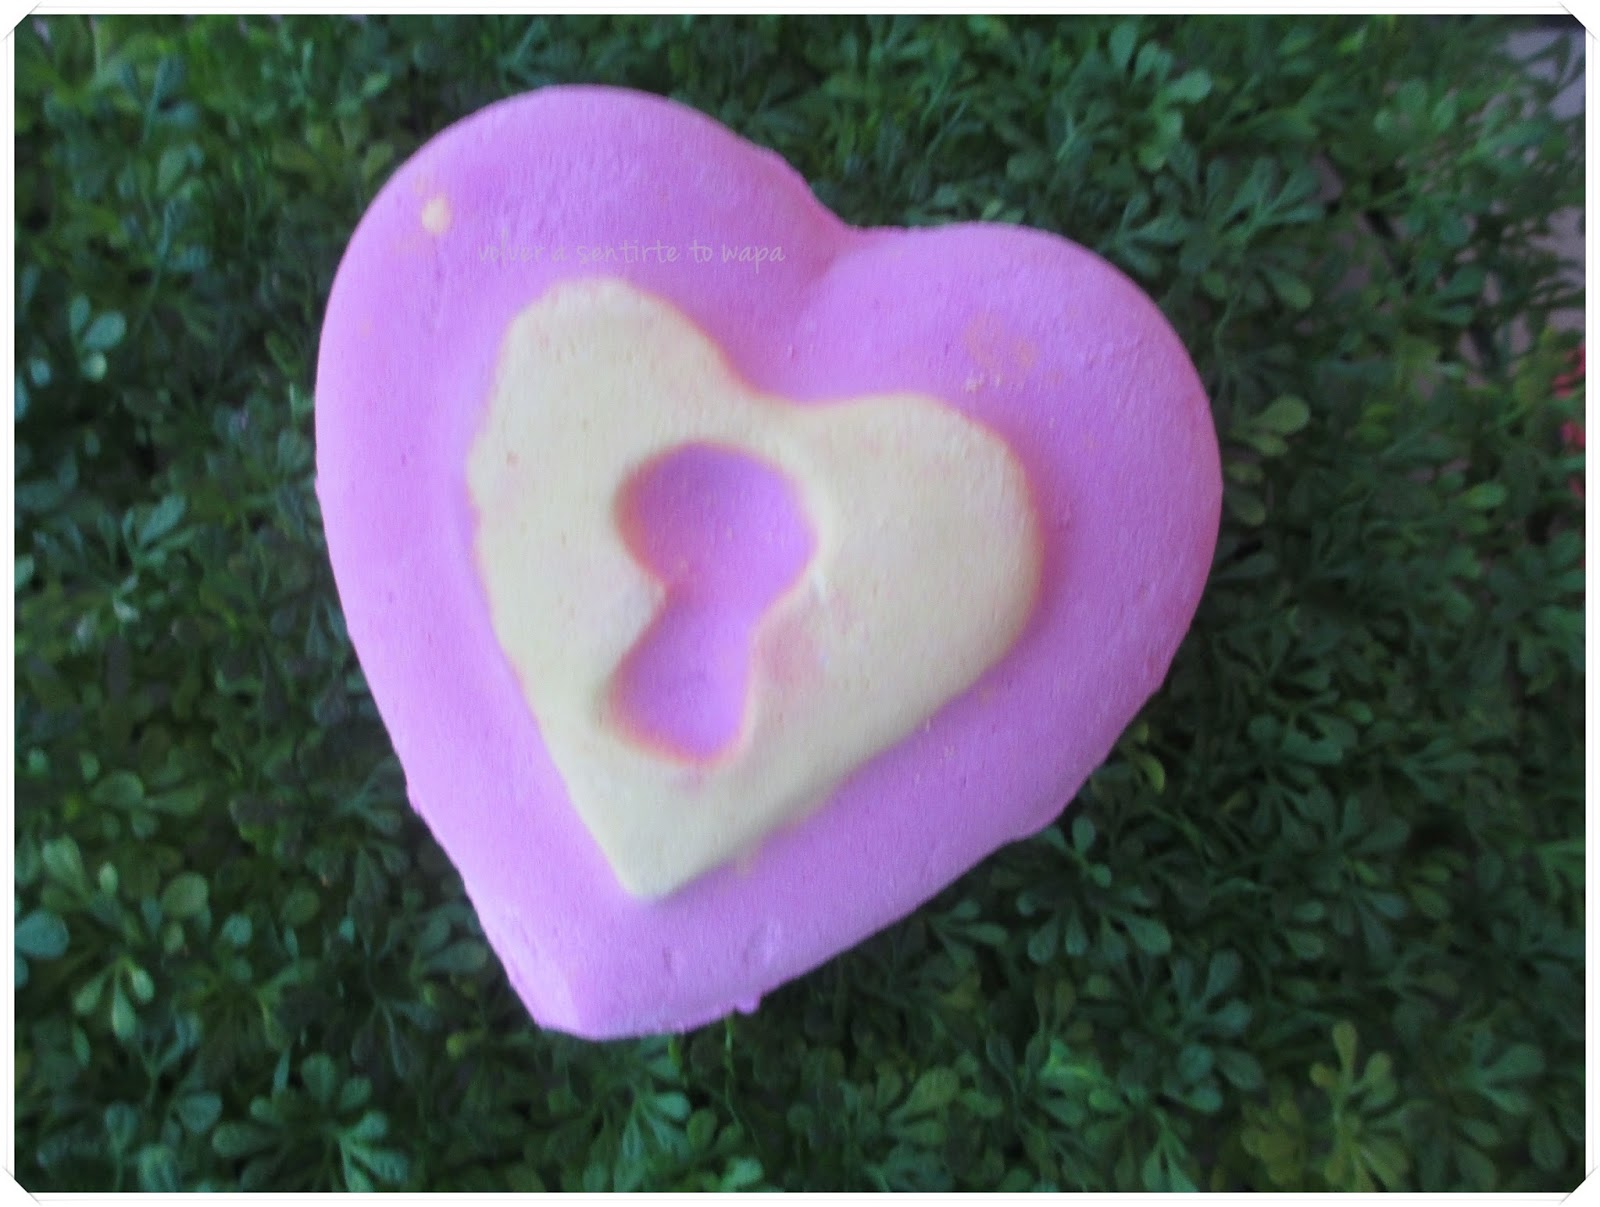 LOTS OF LOVE de LUSH - Bomba de Baño Love Locket